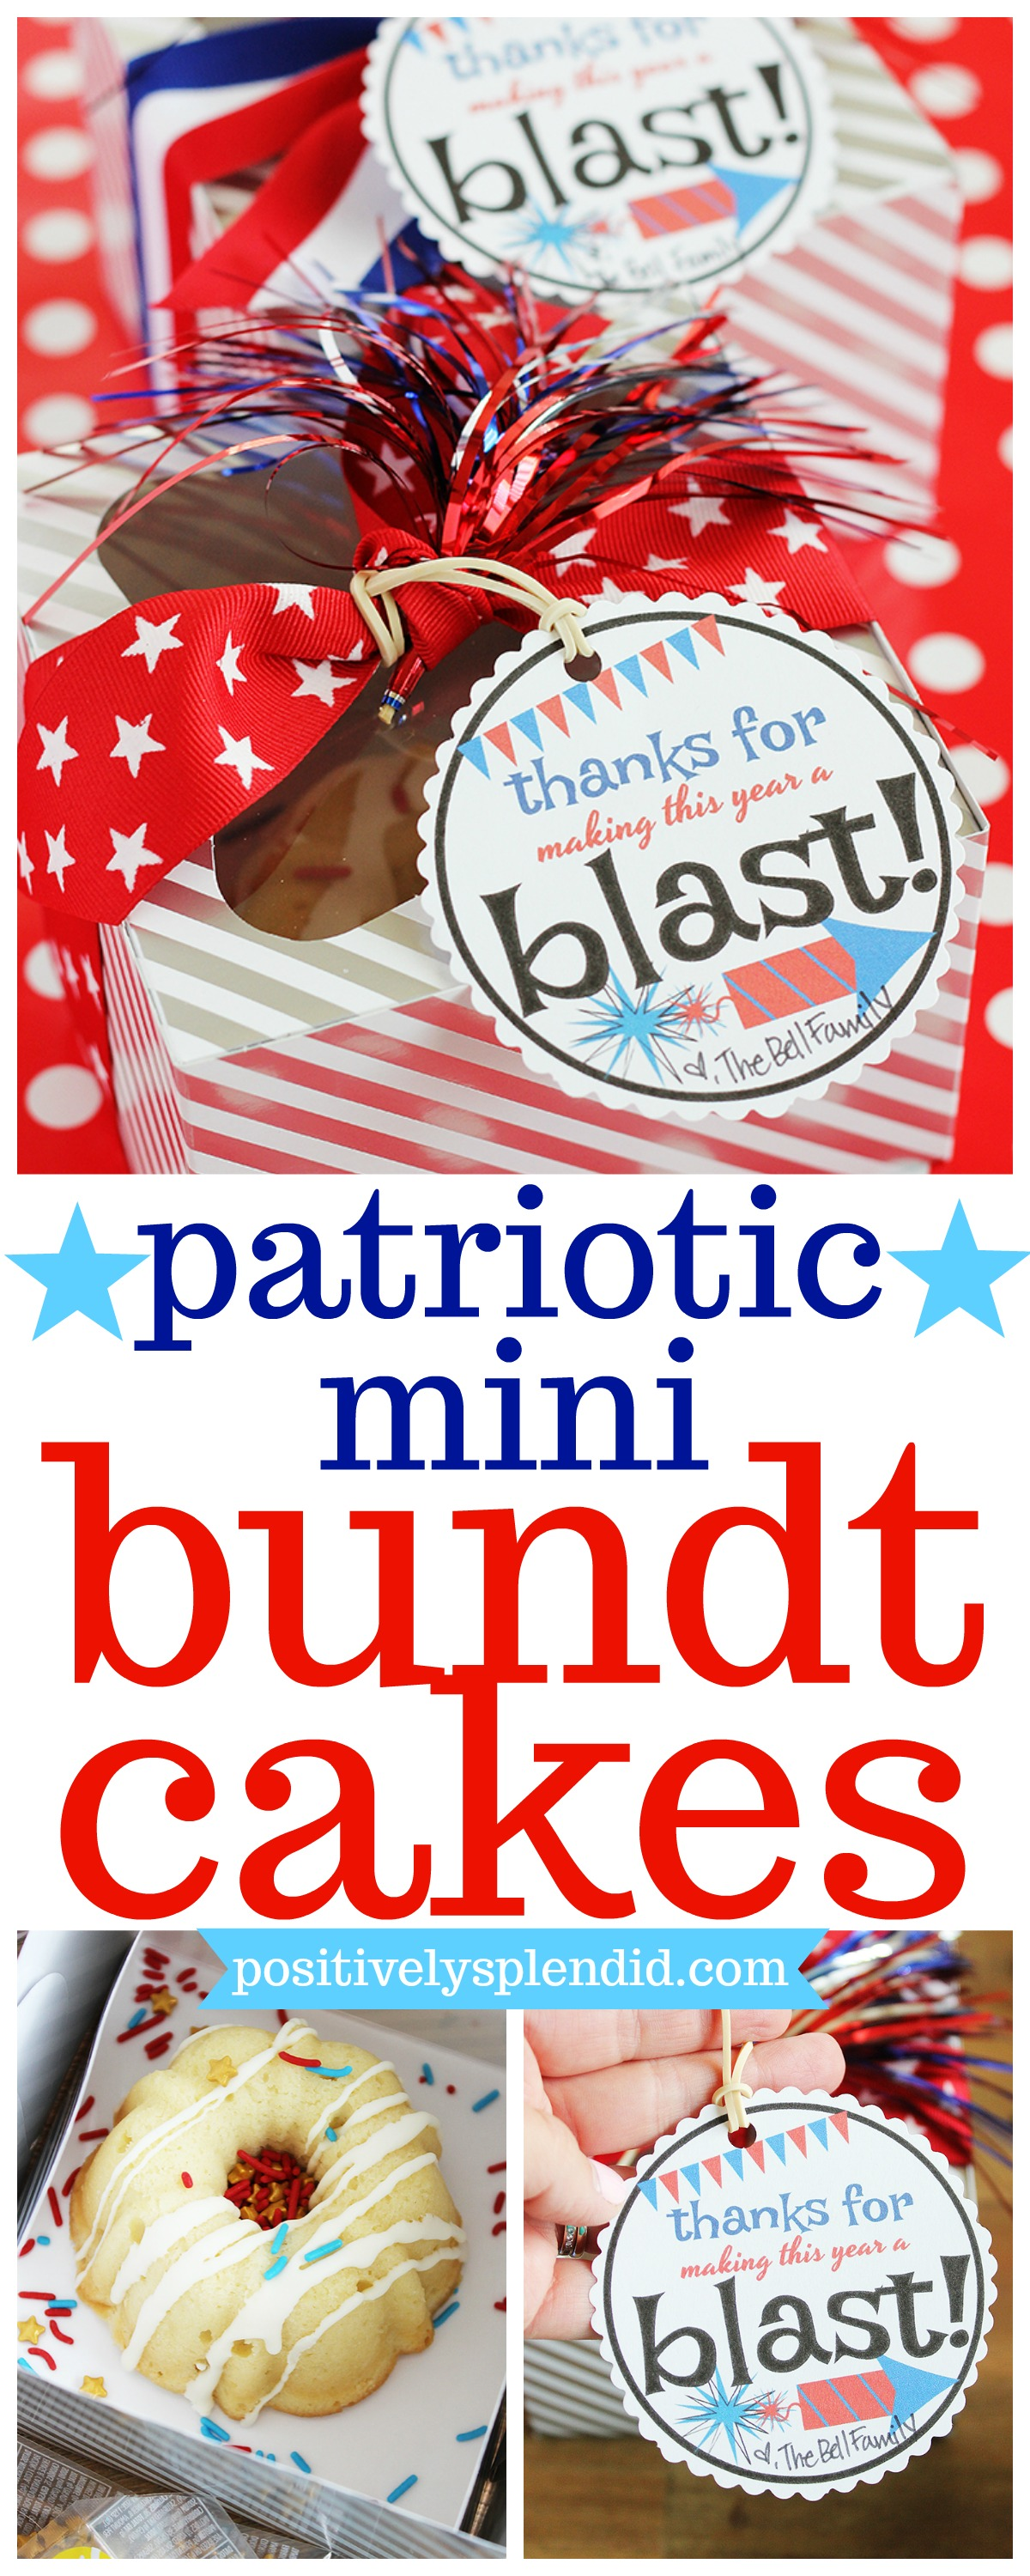 Patriotic Mini Bundt Cakes Gift Idea